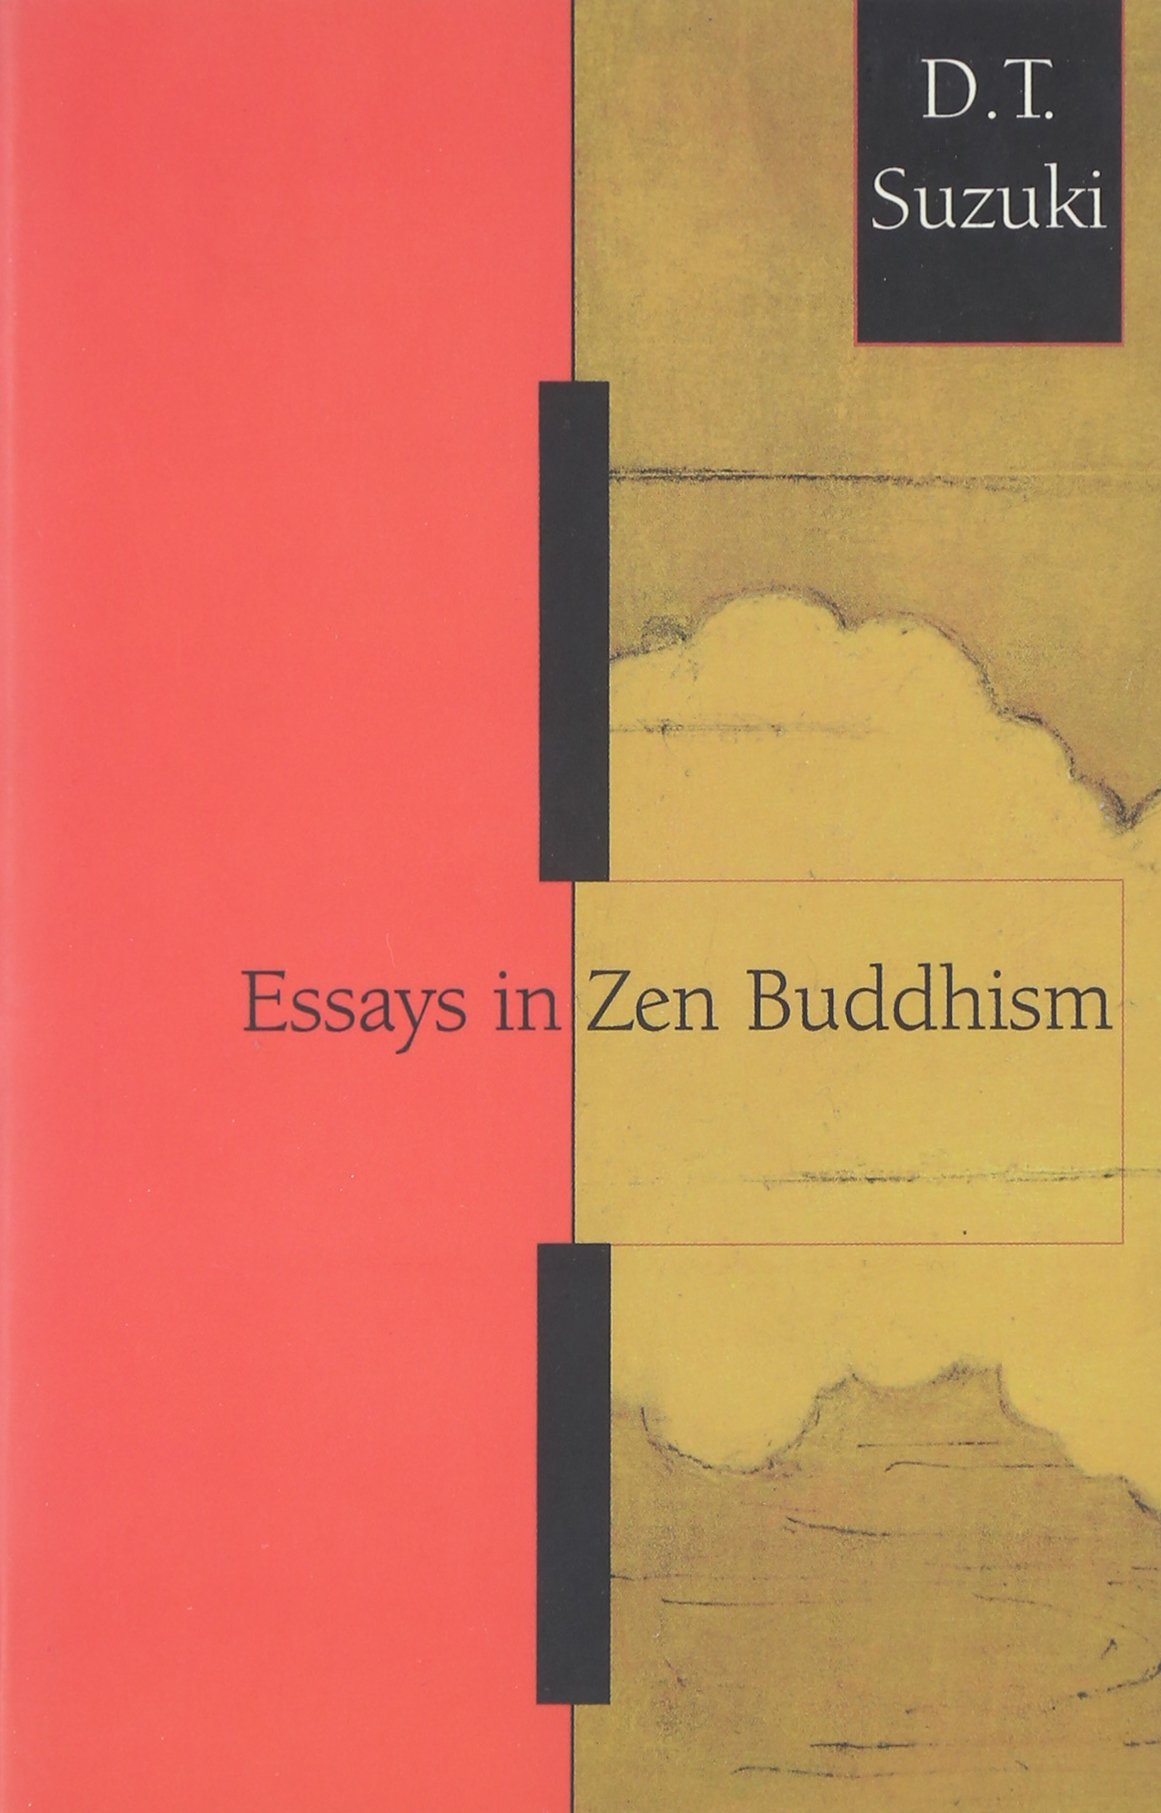 buddhism essays final buddhism paper outline and notes buddhism  com essays in zen buddhism first series com essays in zen buddhism first series 9780802151186 d t